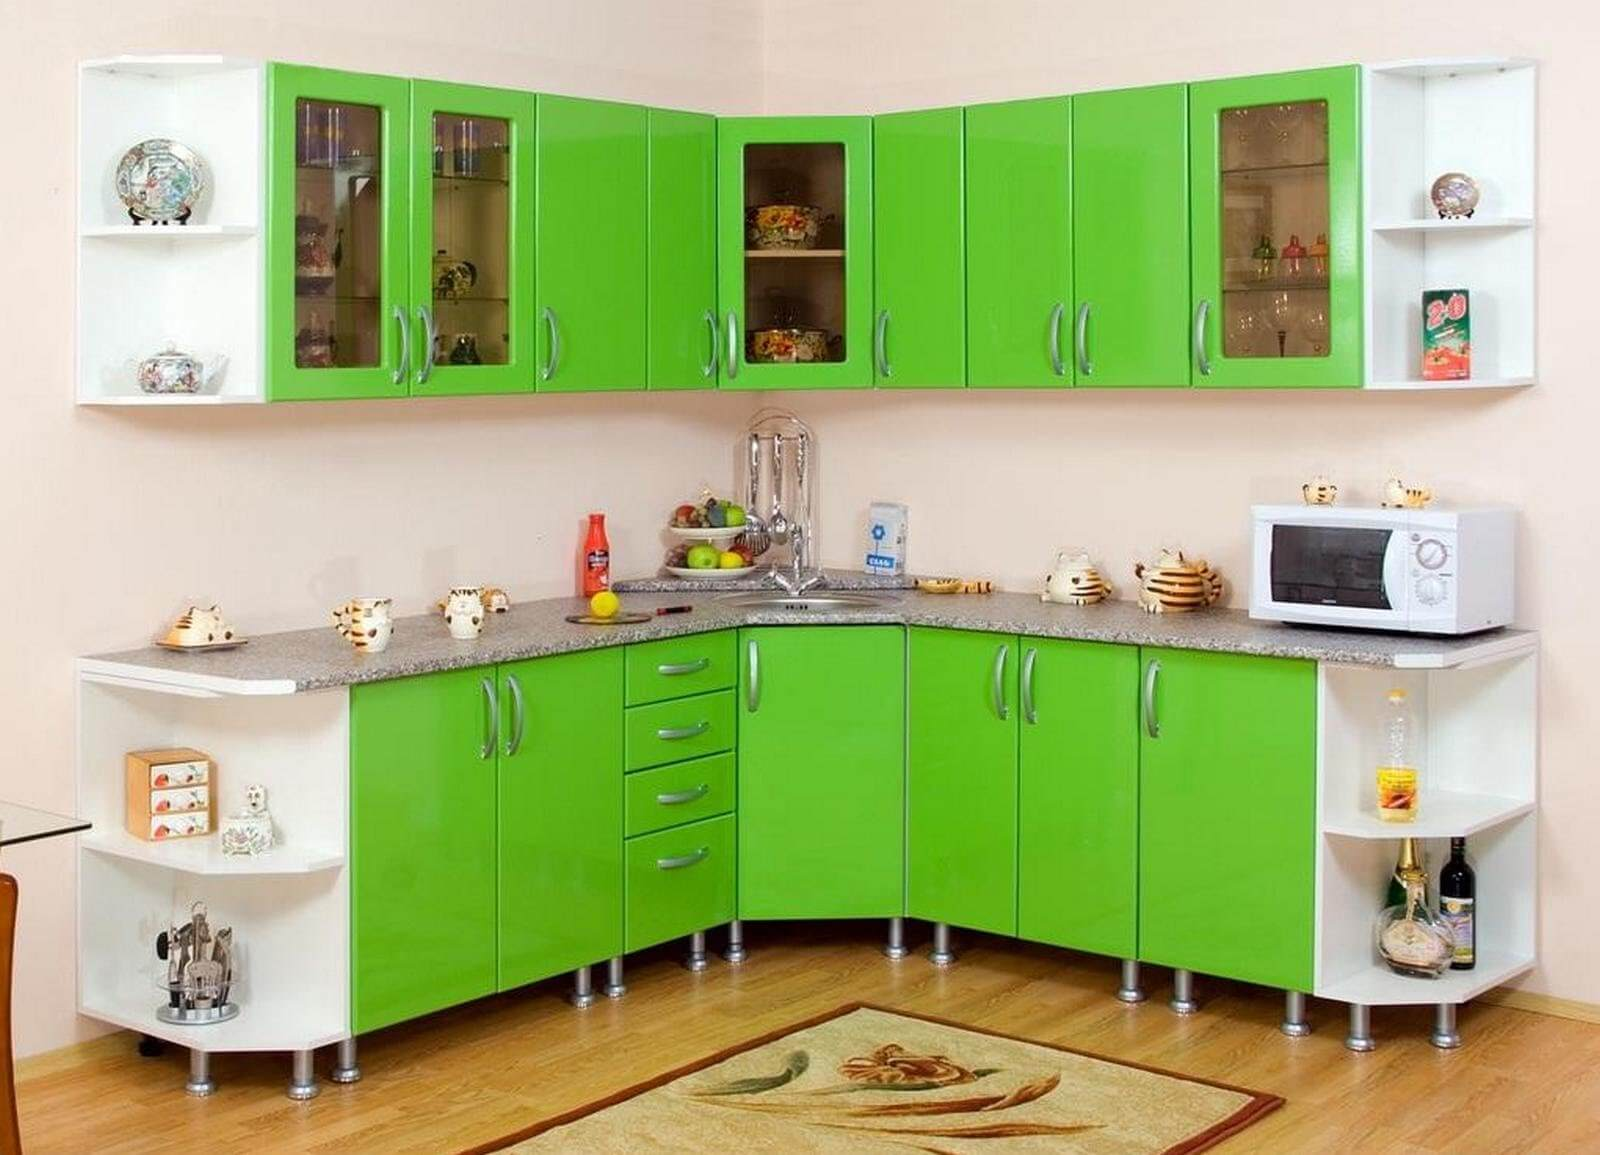 10 Kitchen Custom Cabinets for Unique Functional Interior. Green spectacular kitchen design with trapezoidal corner cabinets